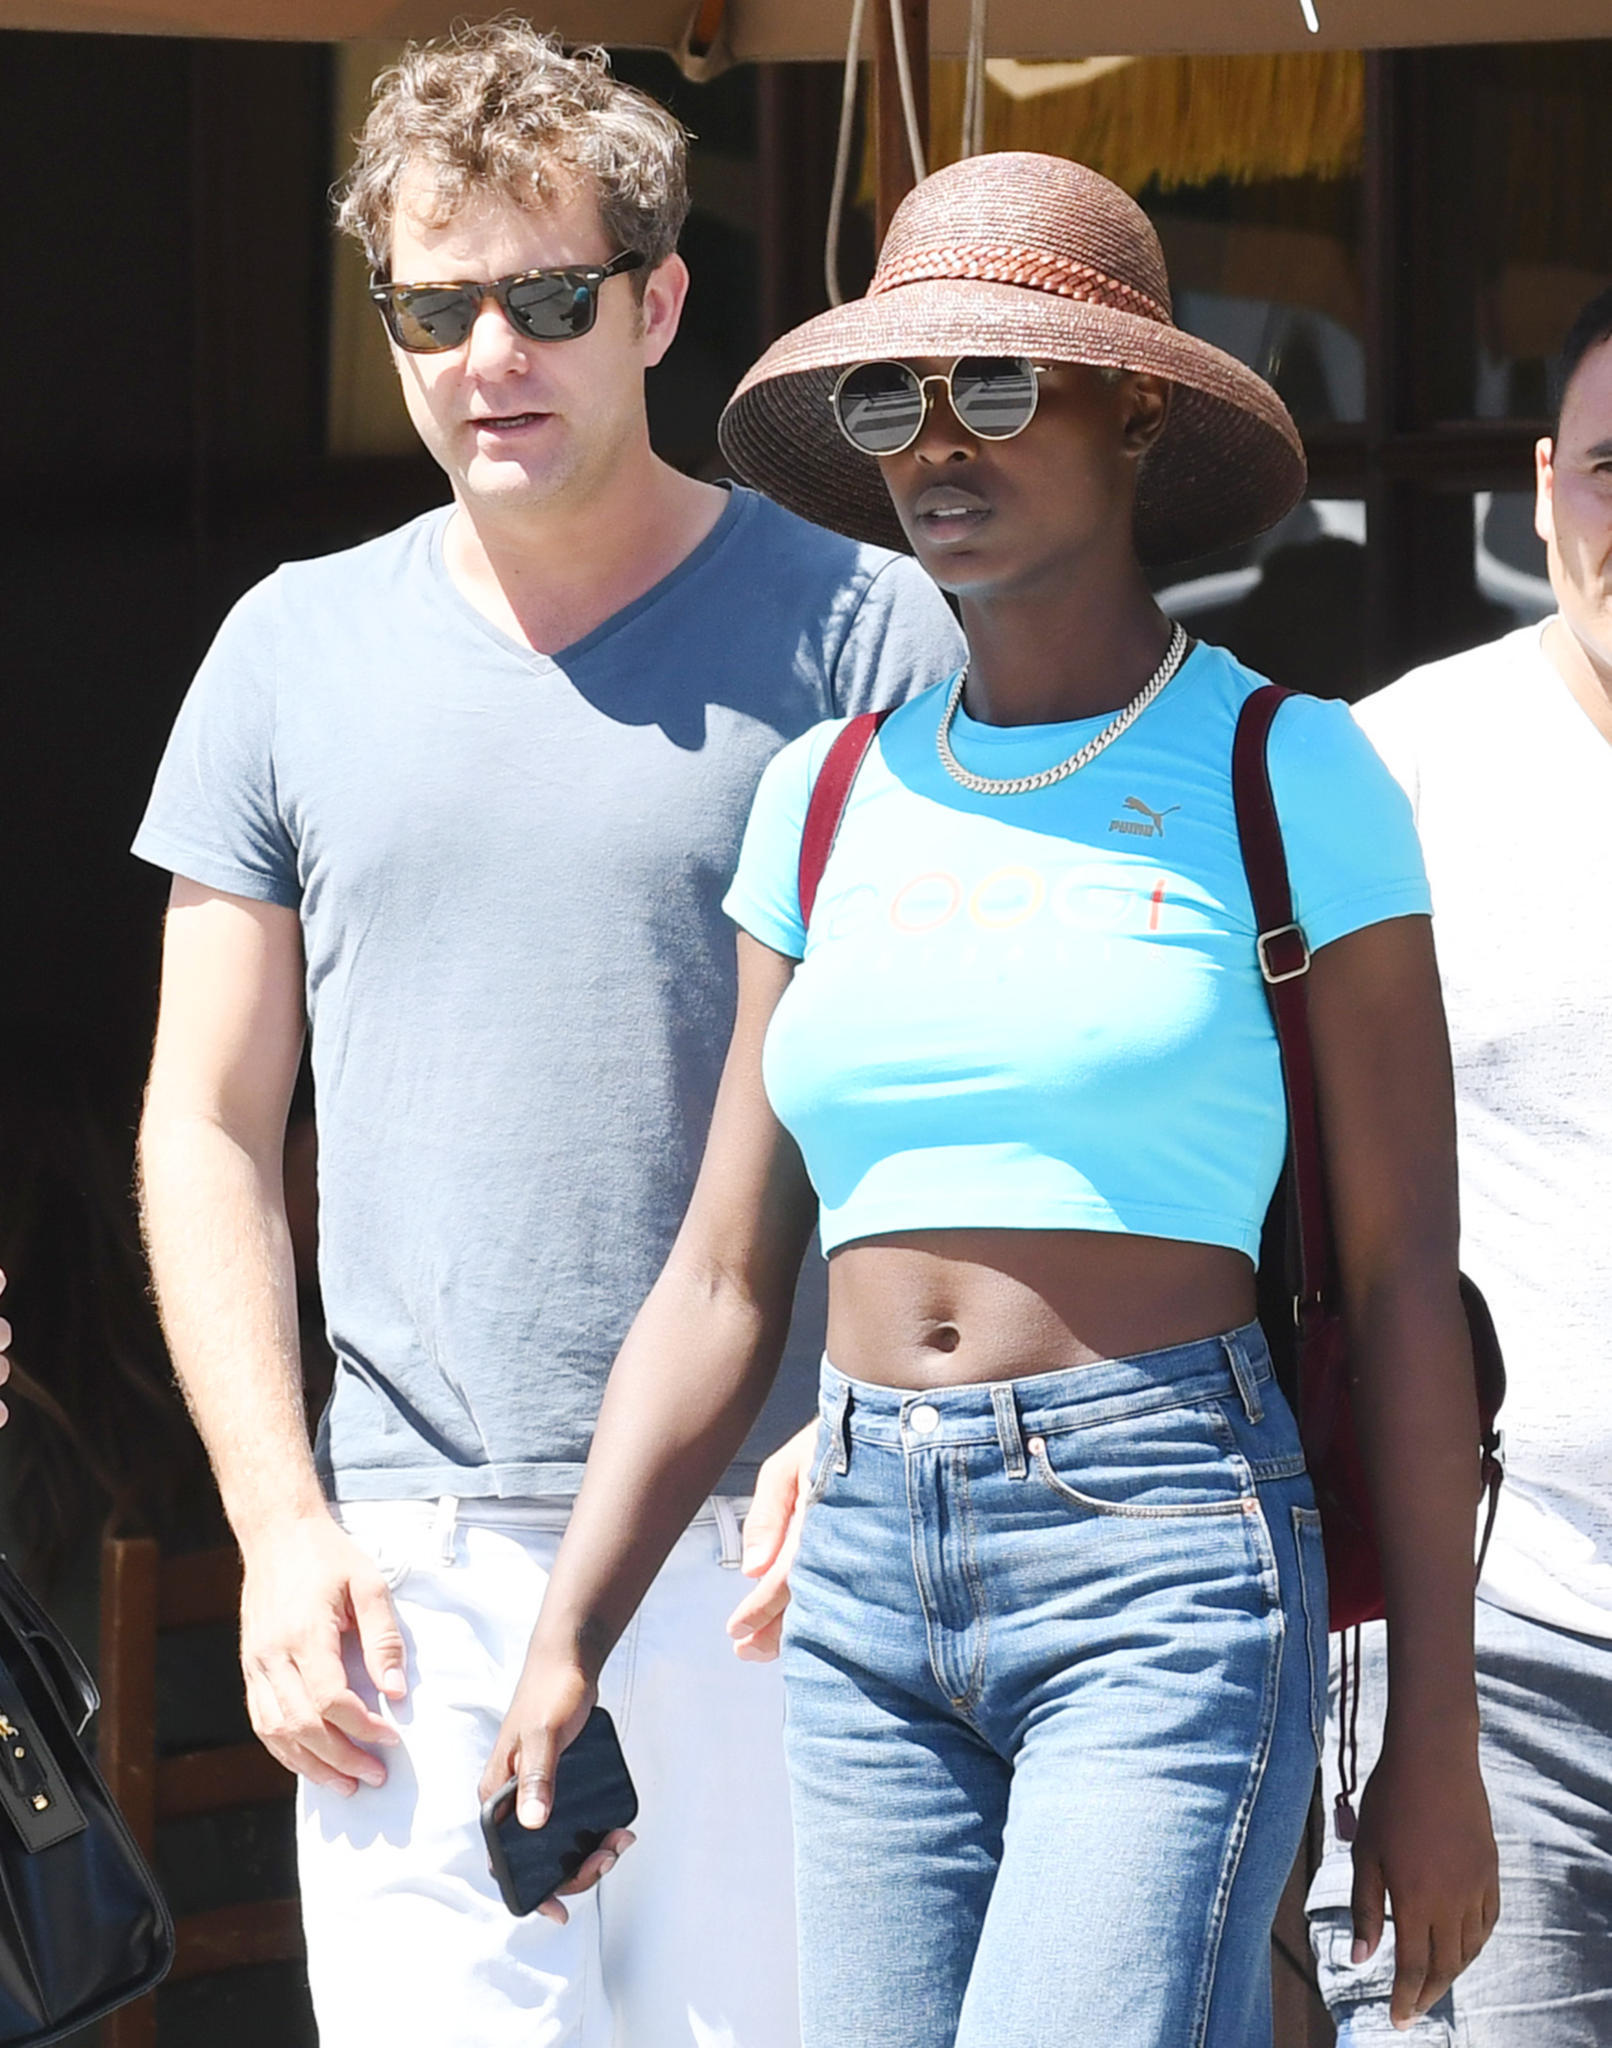 Joshua Jackson will seine Freundin Jodie Turner-Smith heiraten.